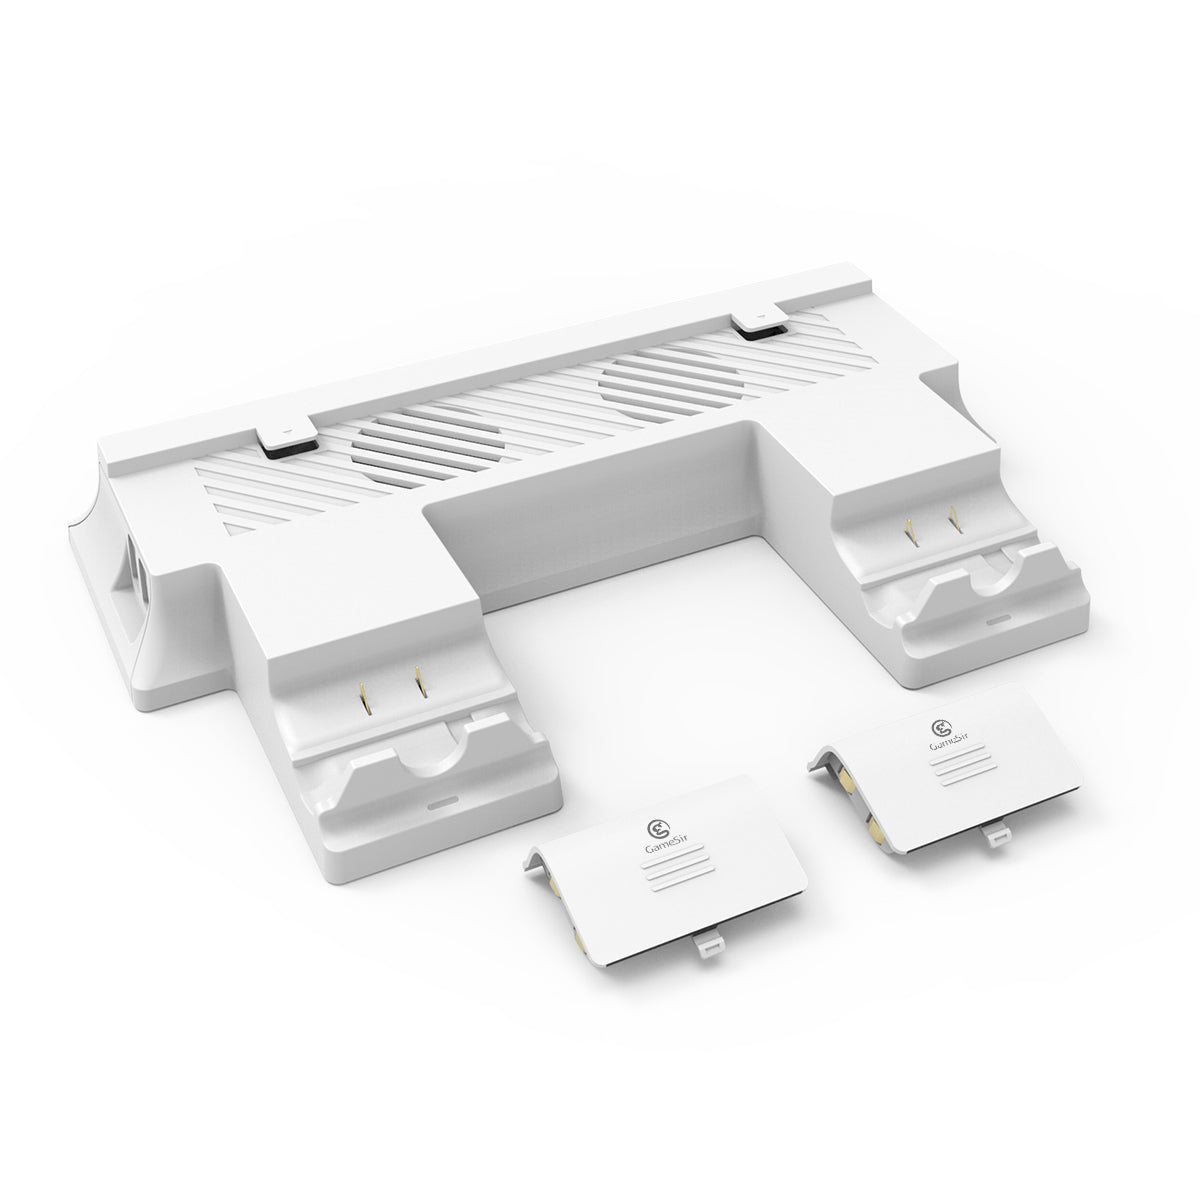 Xbox One S Vertical Console Stand Accessories- GameSir Official Store